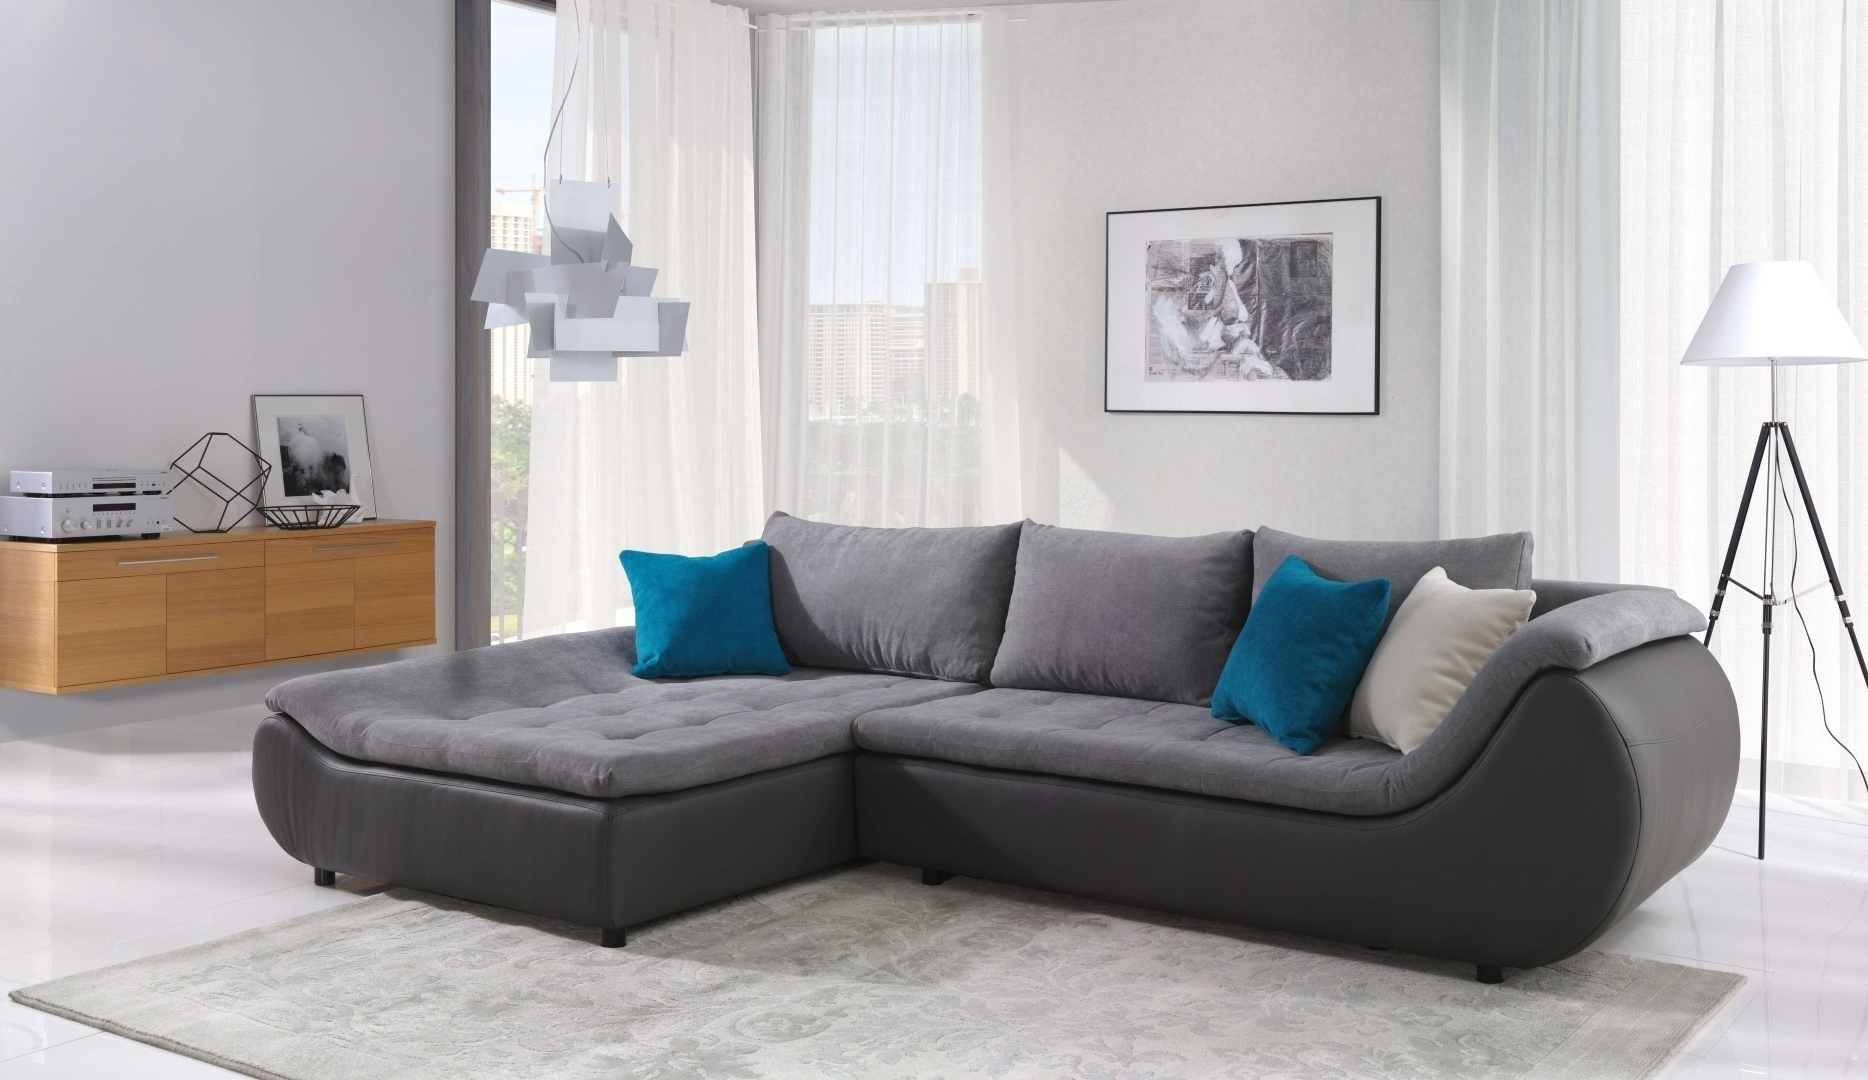 Most Popular Rochester Ny Sectional Sofas Throughout Collection Sectional Sofas Rochester Ny – Mediasupload (View 15 of 20)